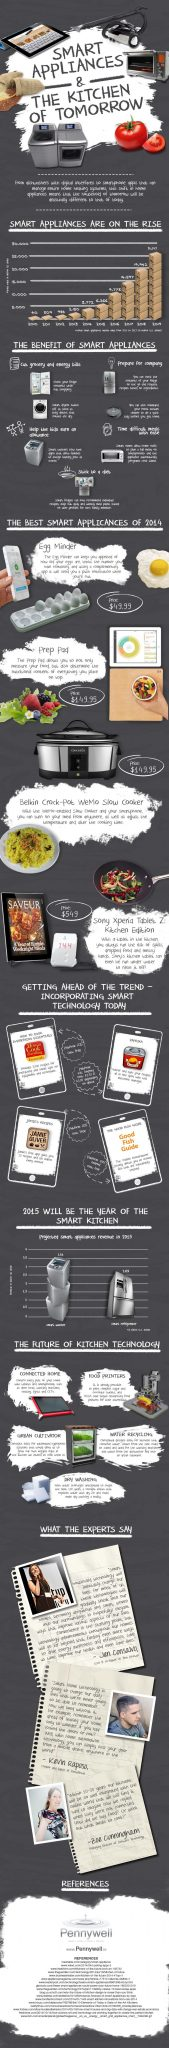 Smart Kitchen Appliances Infographic Smart Appliances and the Kitchen of Tomorrow